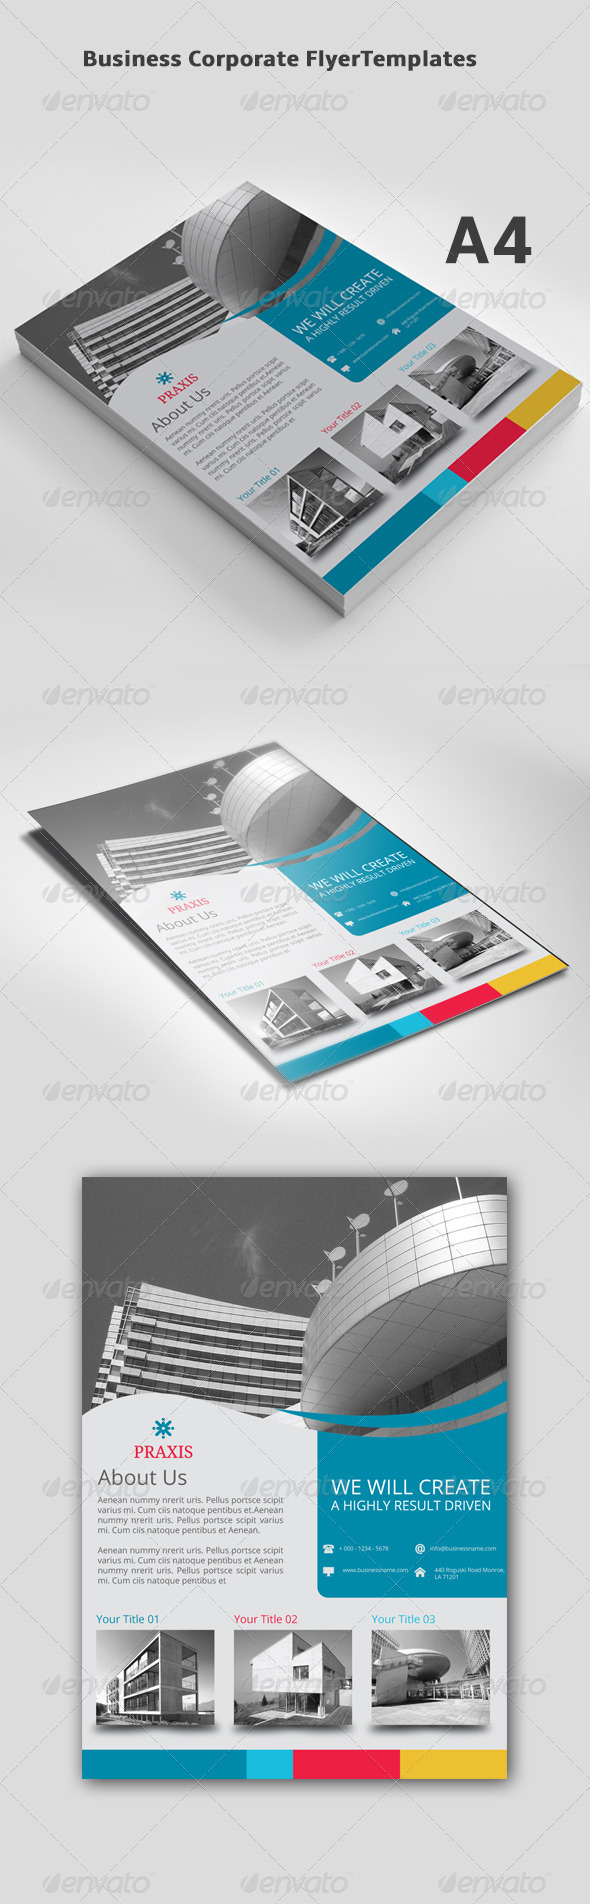 GraphicRiver Business Corporate Flyer Templates 8257757